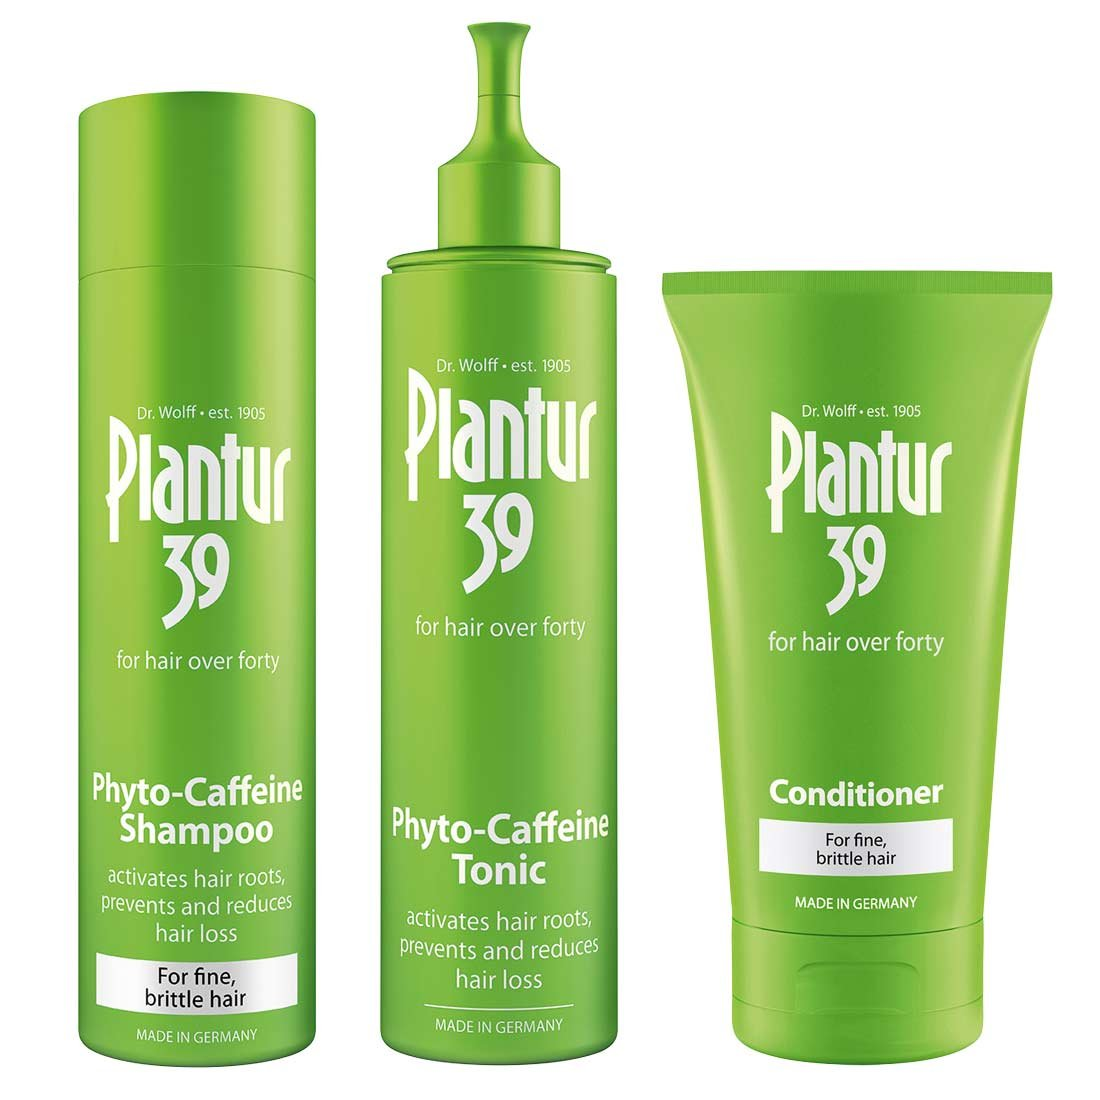 Plantur 39 Phyto-Caffeine Shampoo and Conditioner for Fine and Brittle Hair Dr. Kurt Wolff